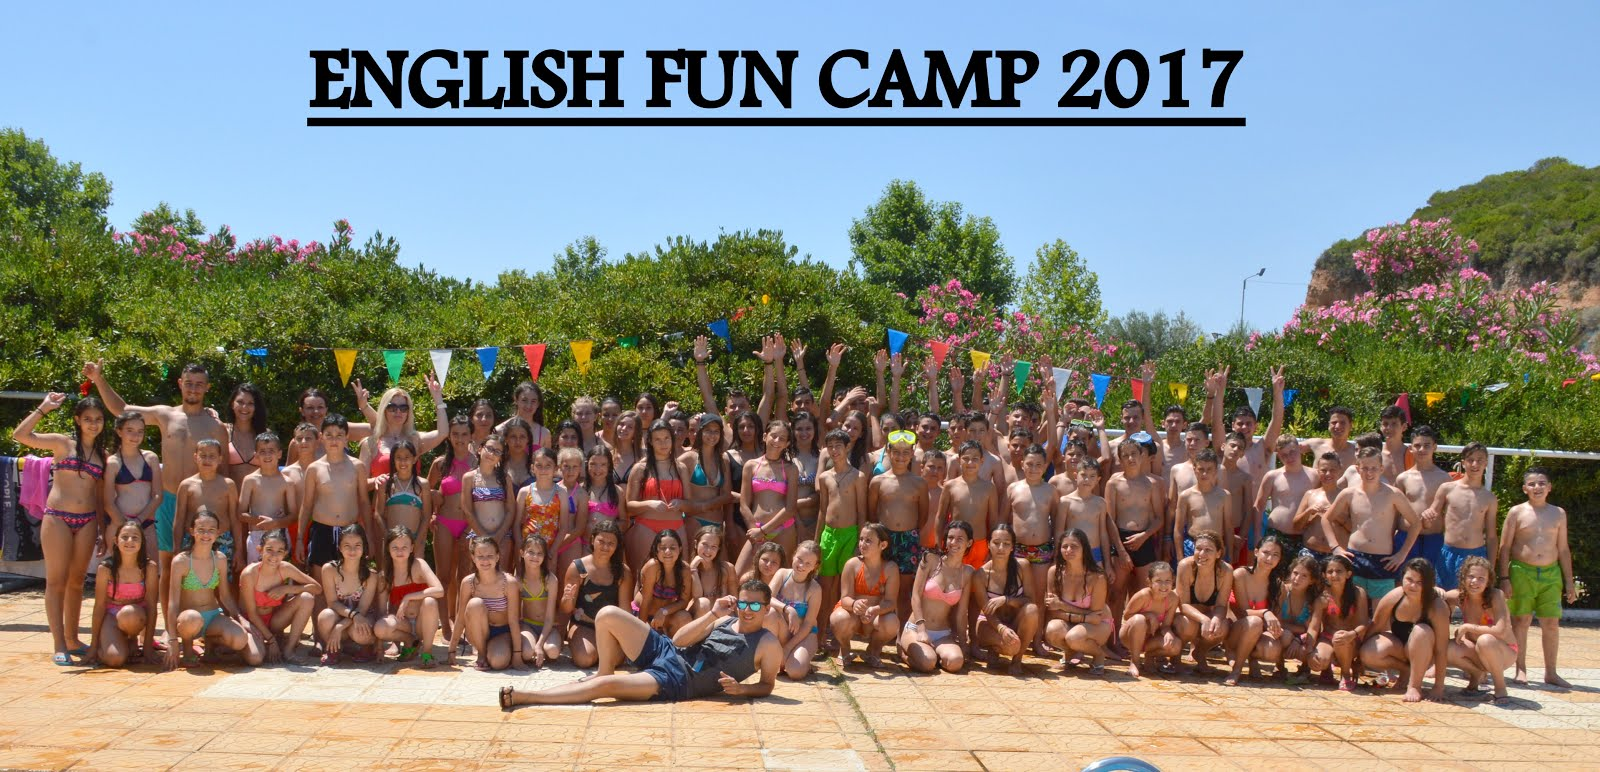 English Fun Camp 2017